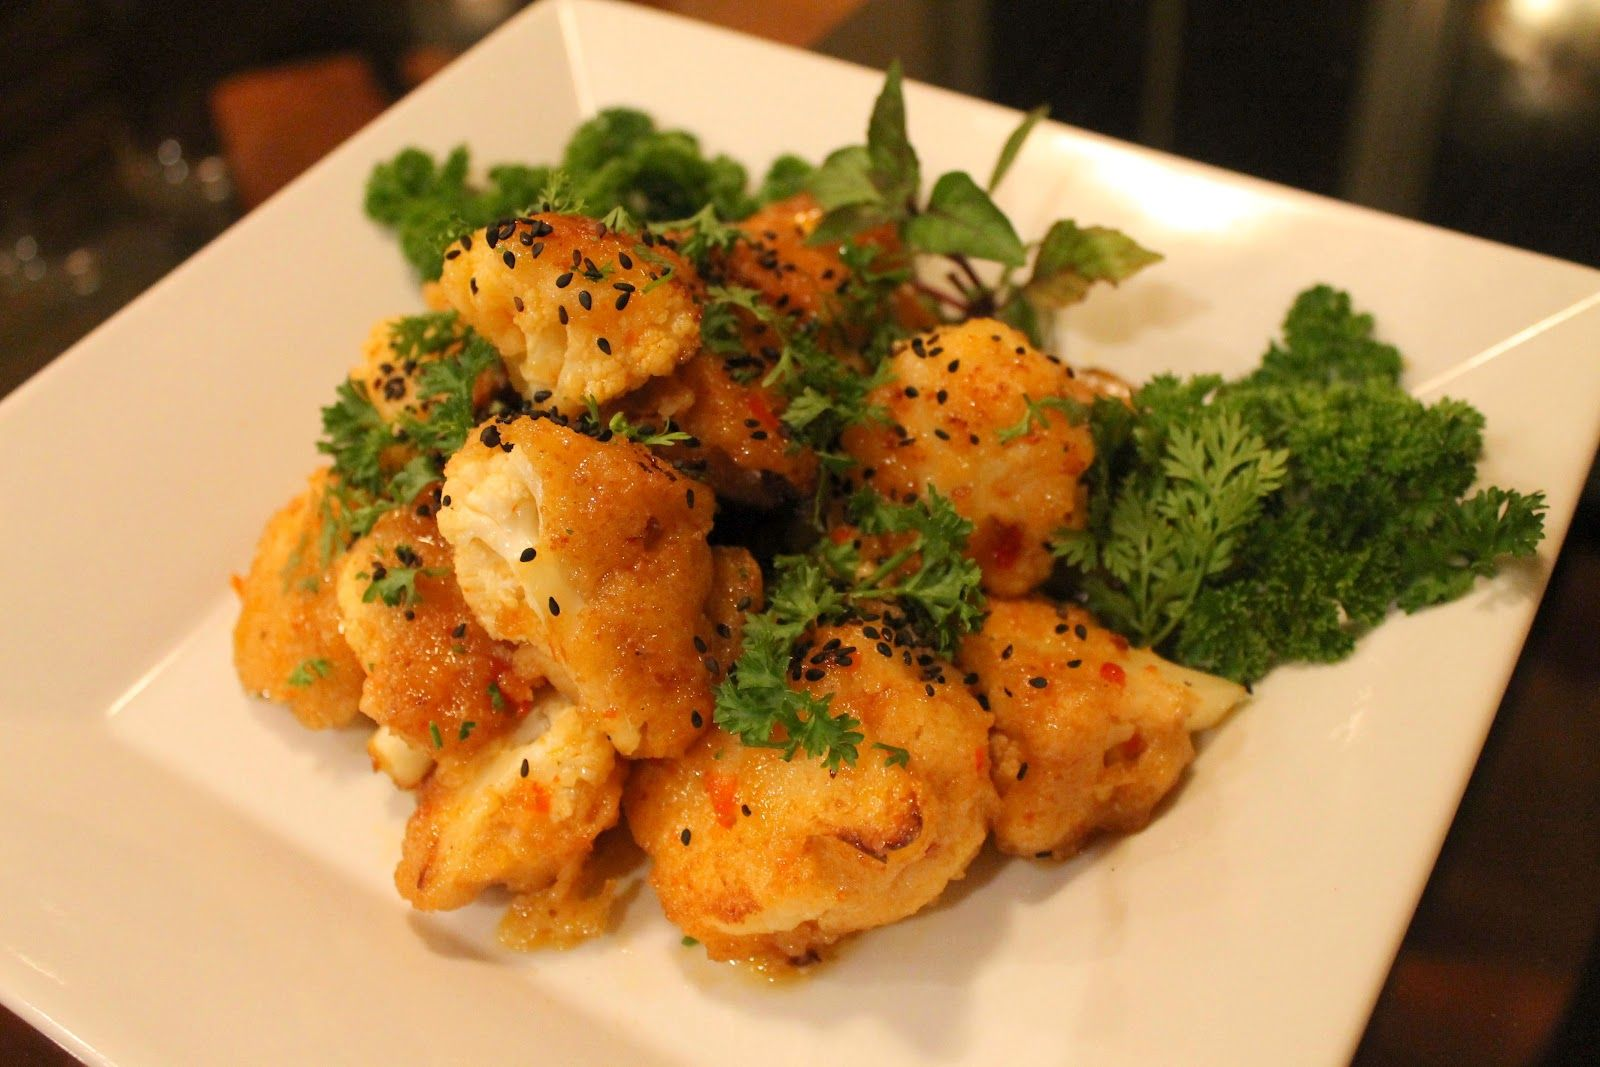 Vegan Cauliflower Frito Misto This Is A Popular Dish On